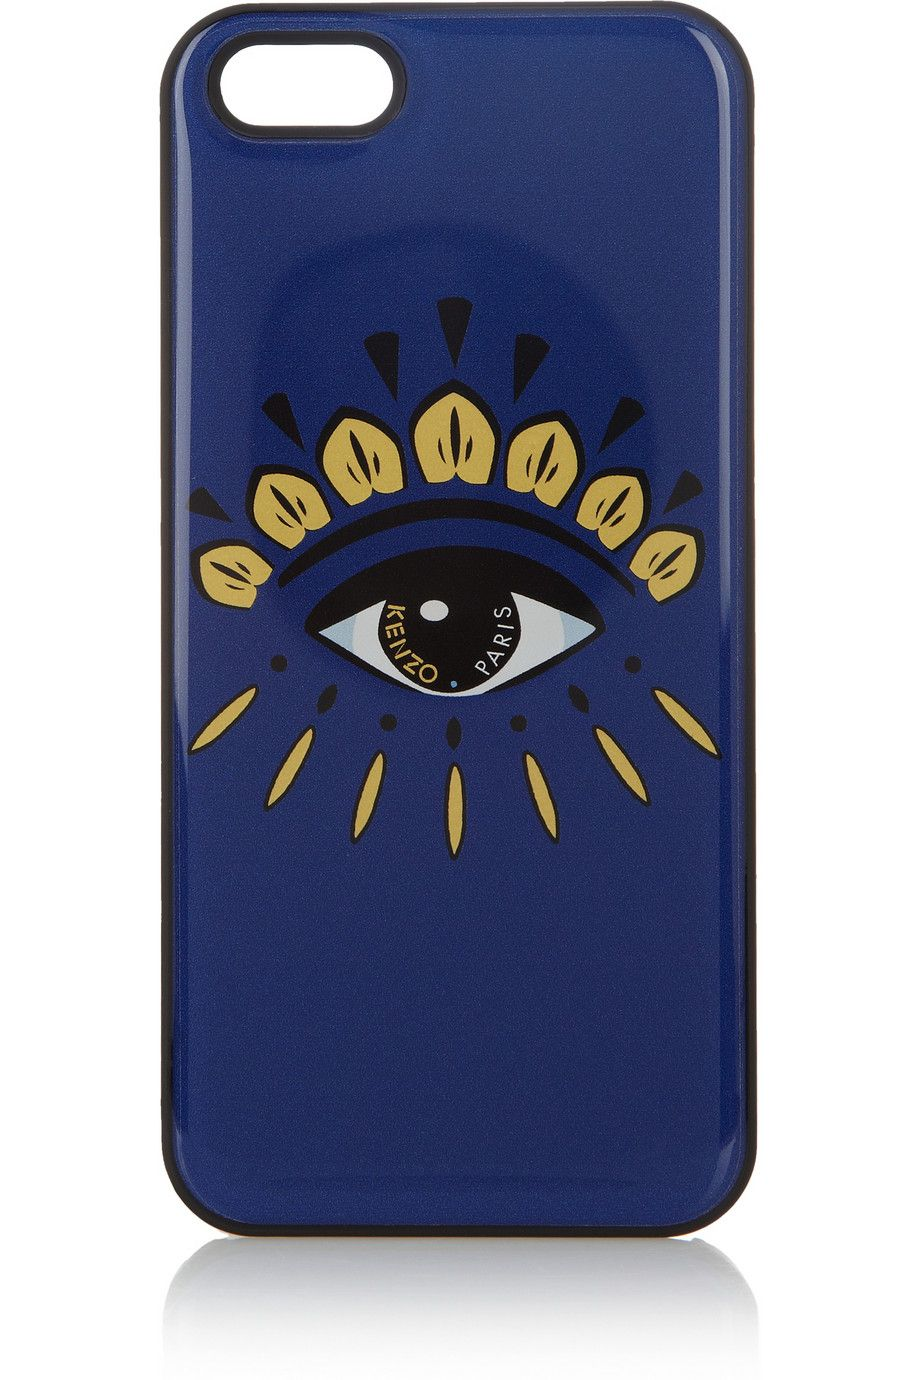 new products fb99b 38336 KENZO | Eye-printed iPhone 5 cover | Techy | Cute iphone 5 cases ...